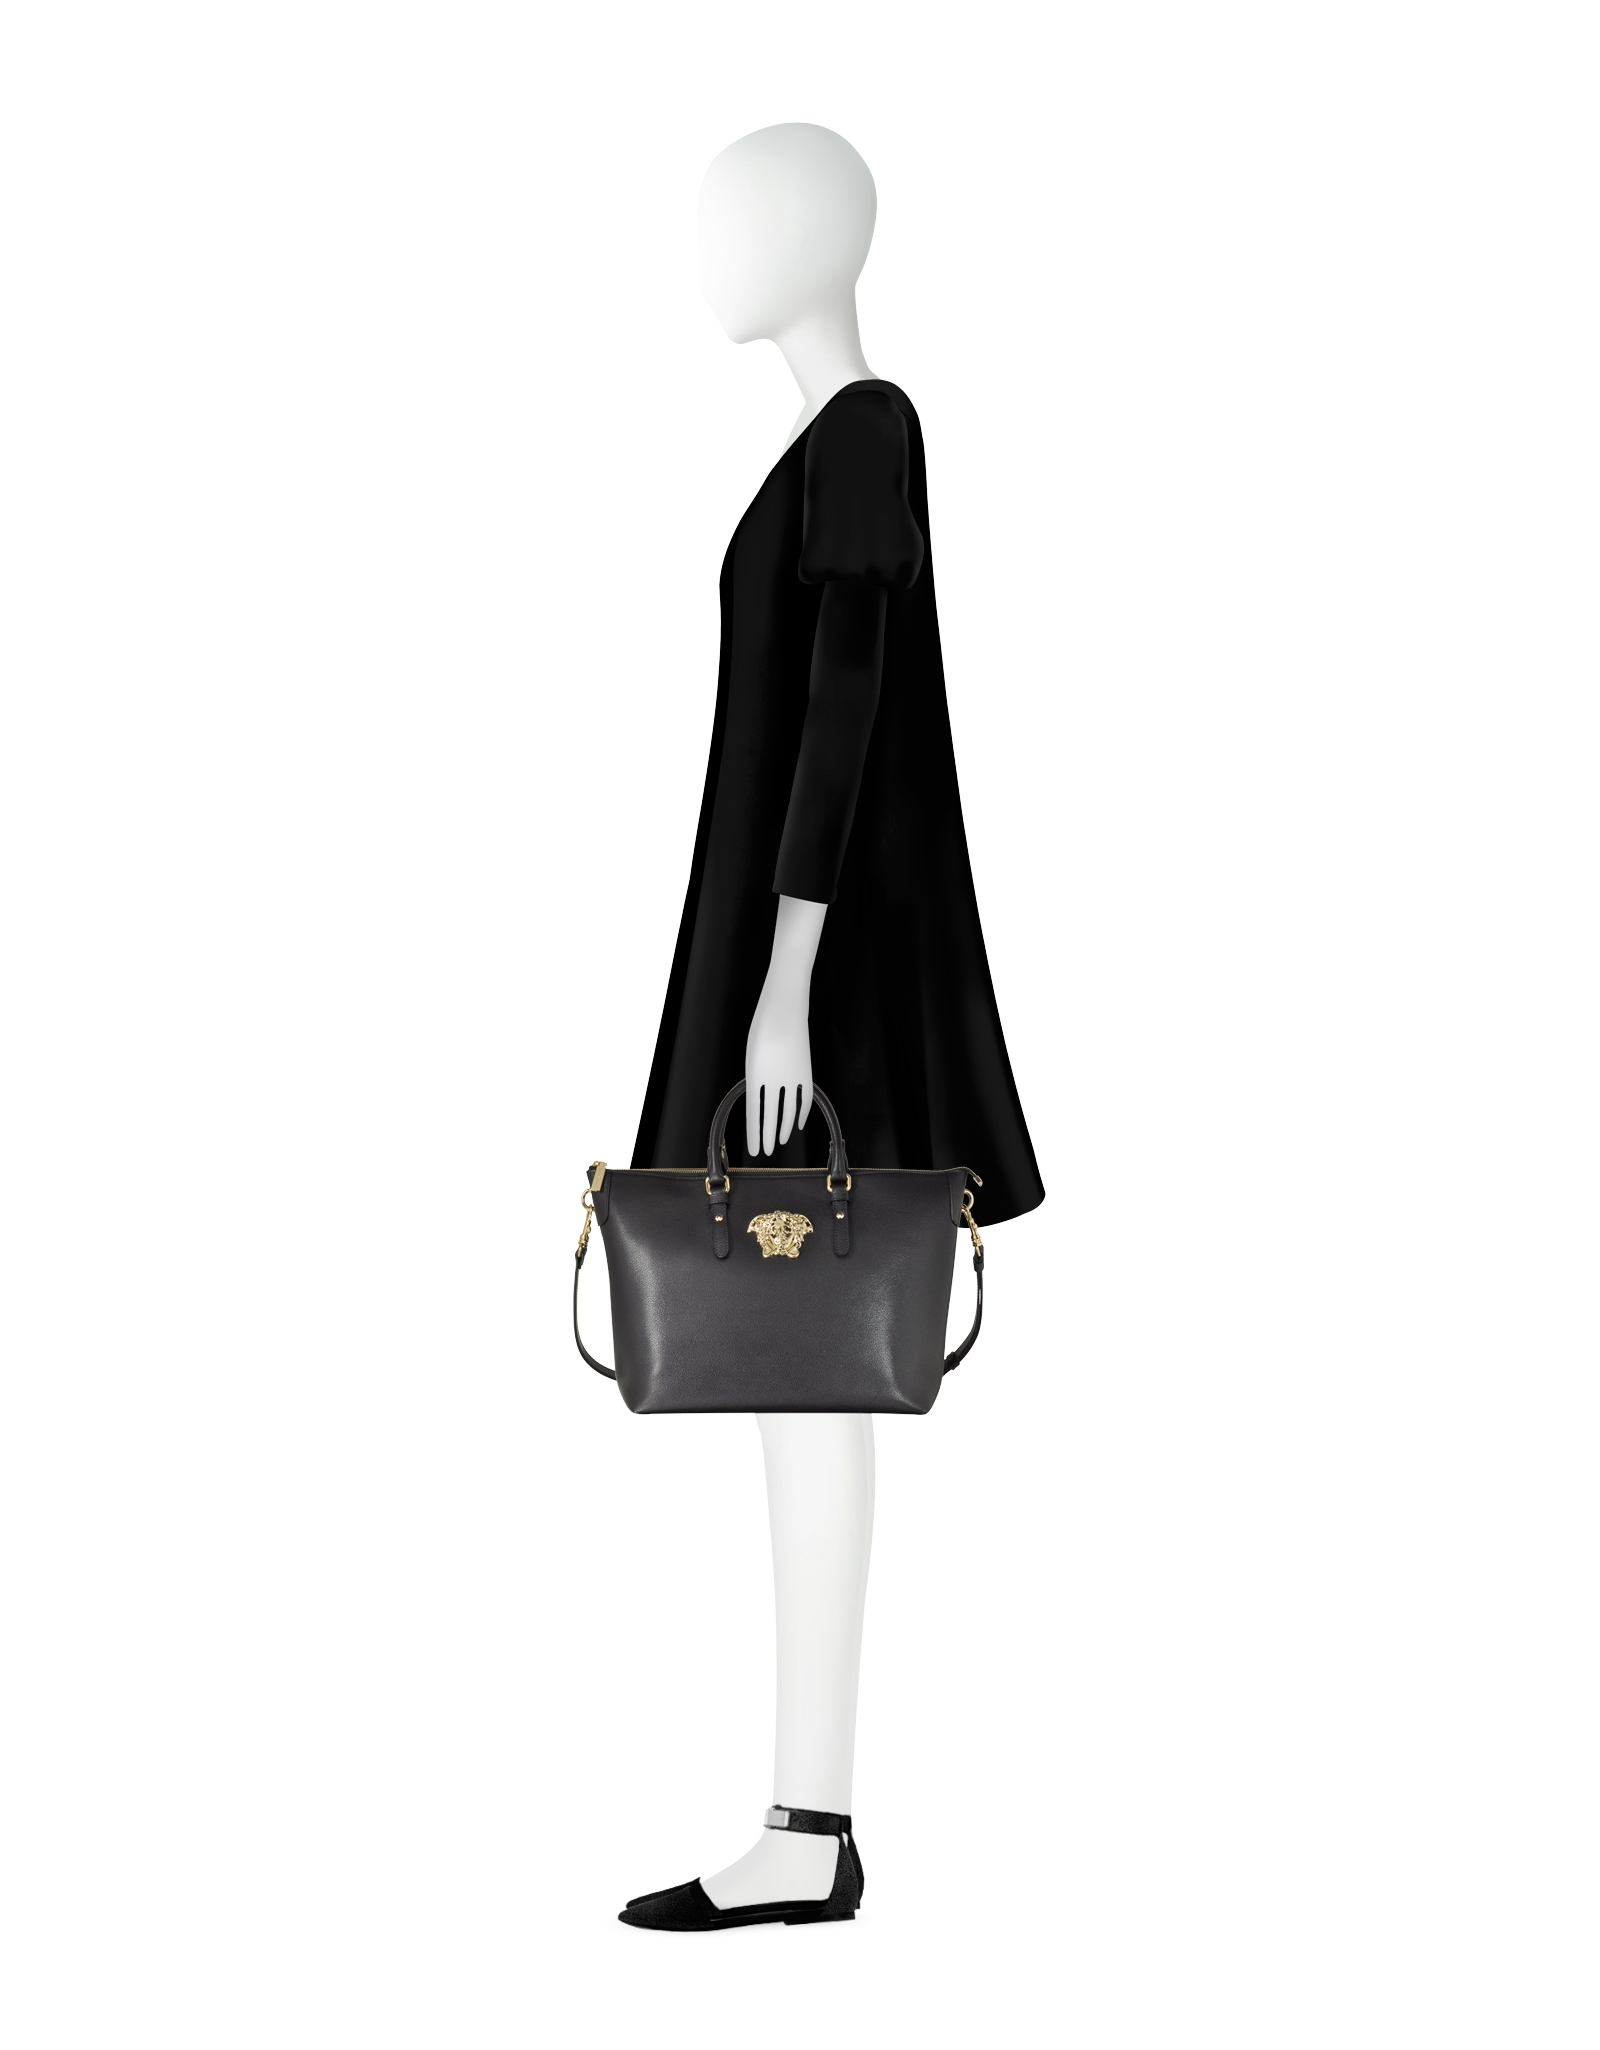 Versace Palazzo Small Black Leather Tote Bag in Black | Lyst